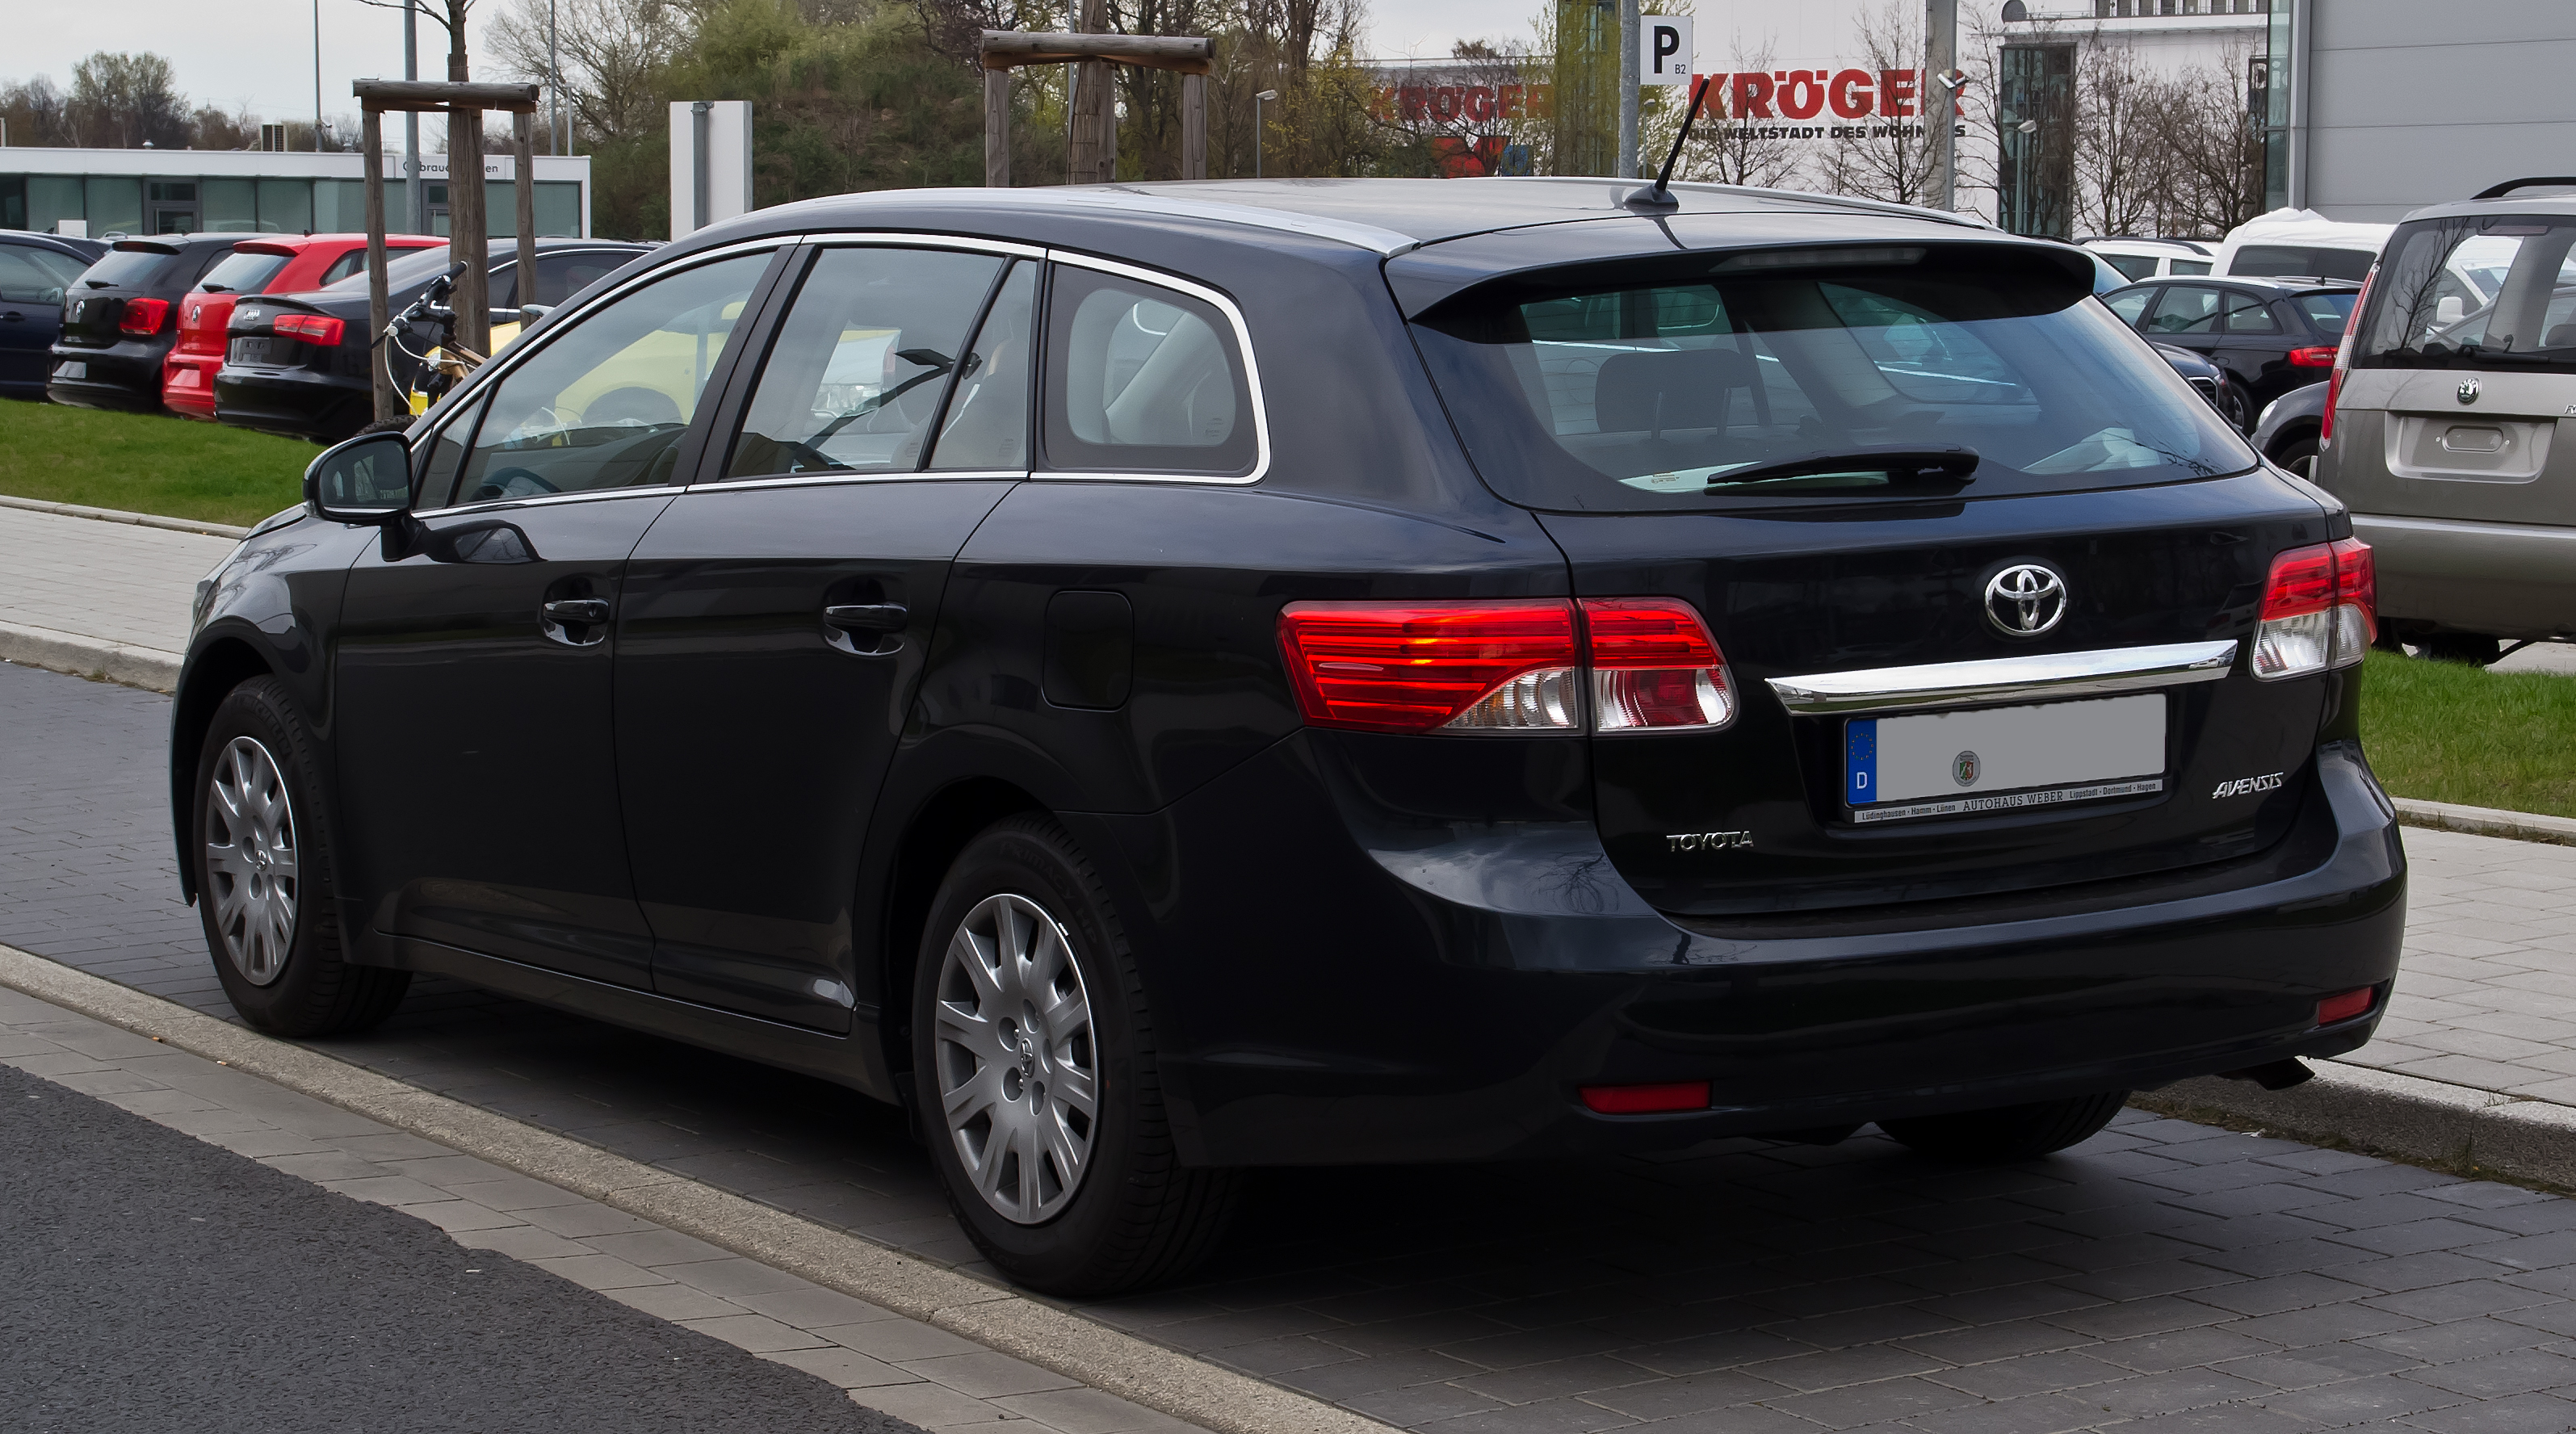 file:toyota avensis combi (iii, facelift) – heckansicht, 1. april